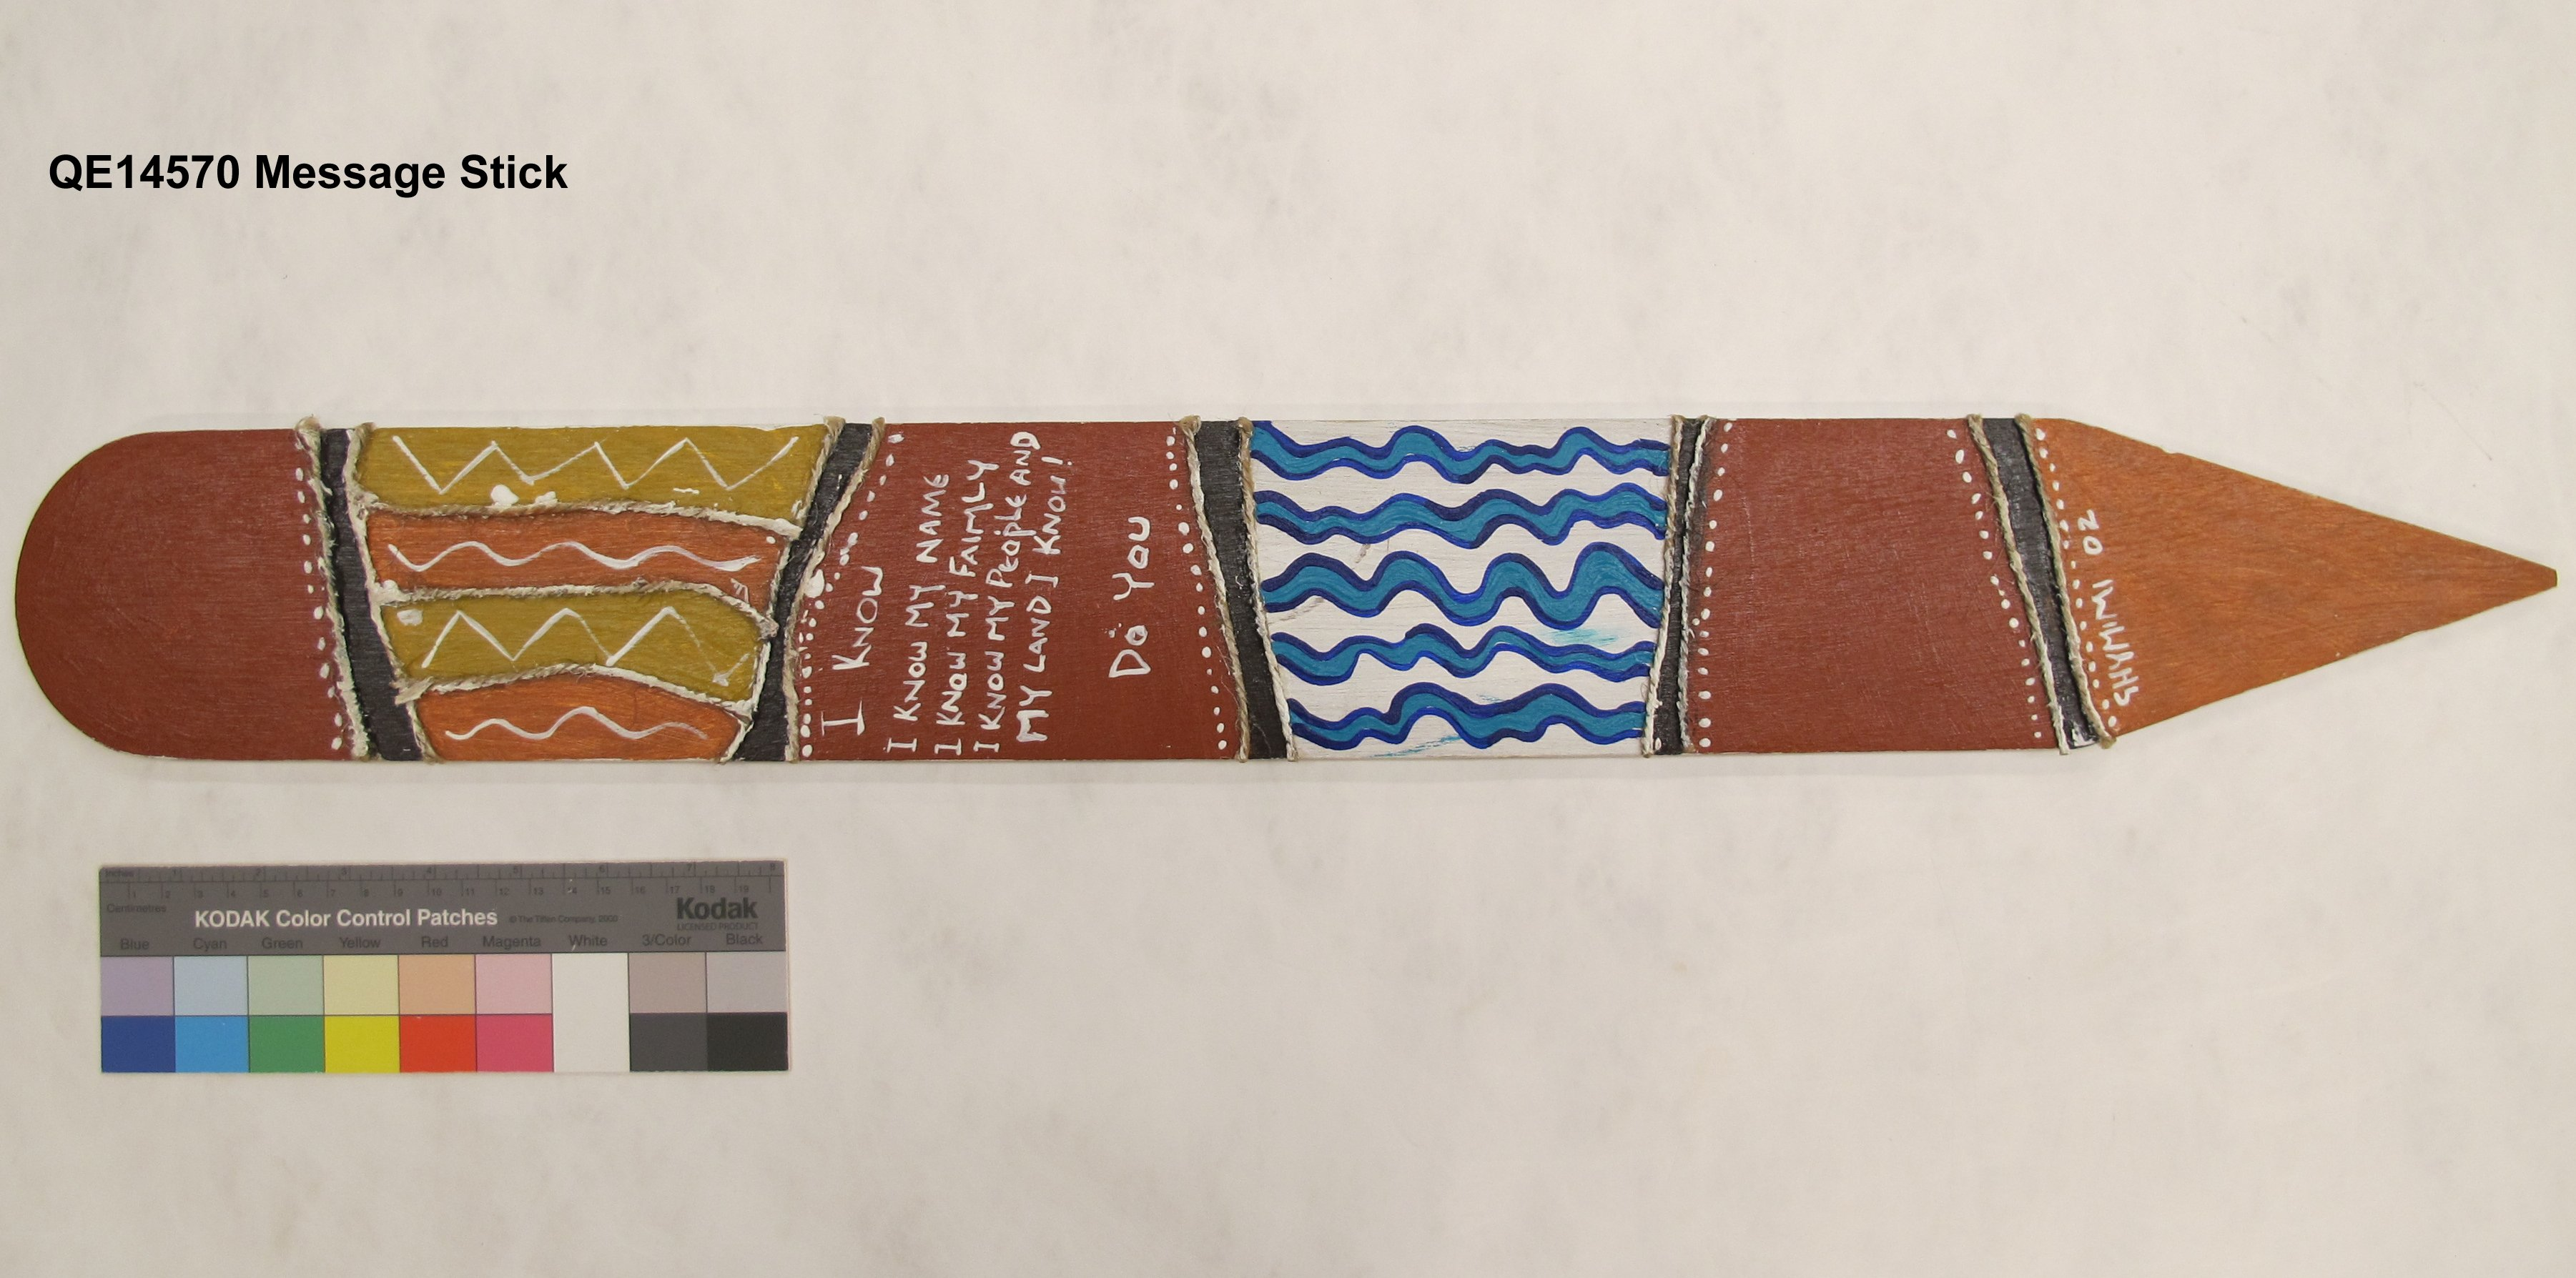 Childrens Rugs Australia Message Sticks Rich Ways Of Weaving Aboriginal Cultures